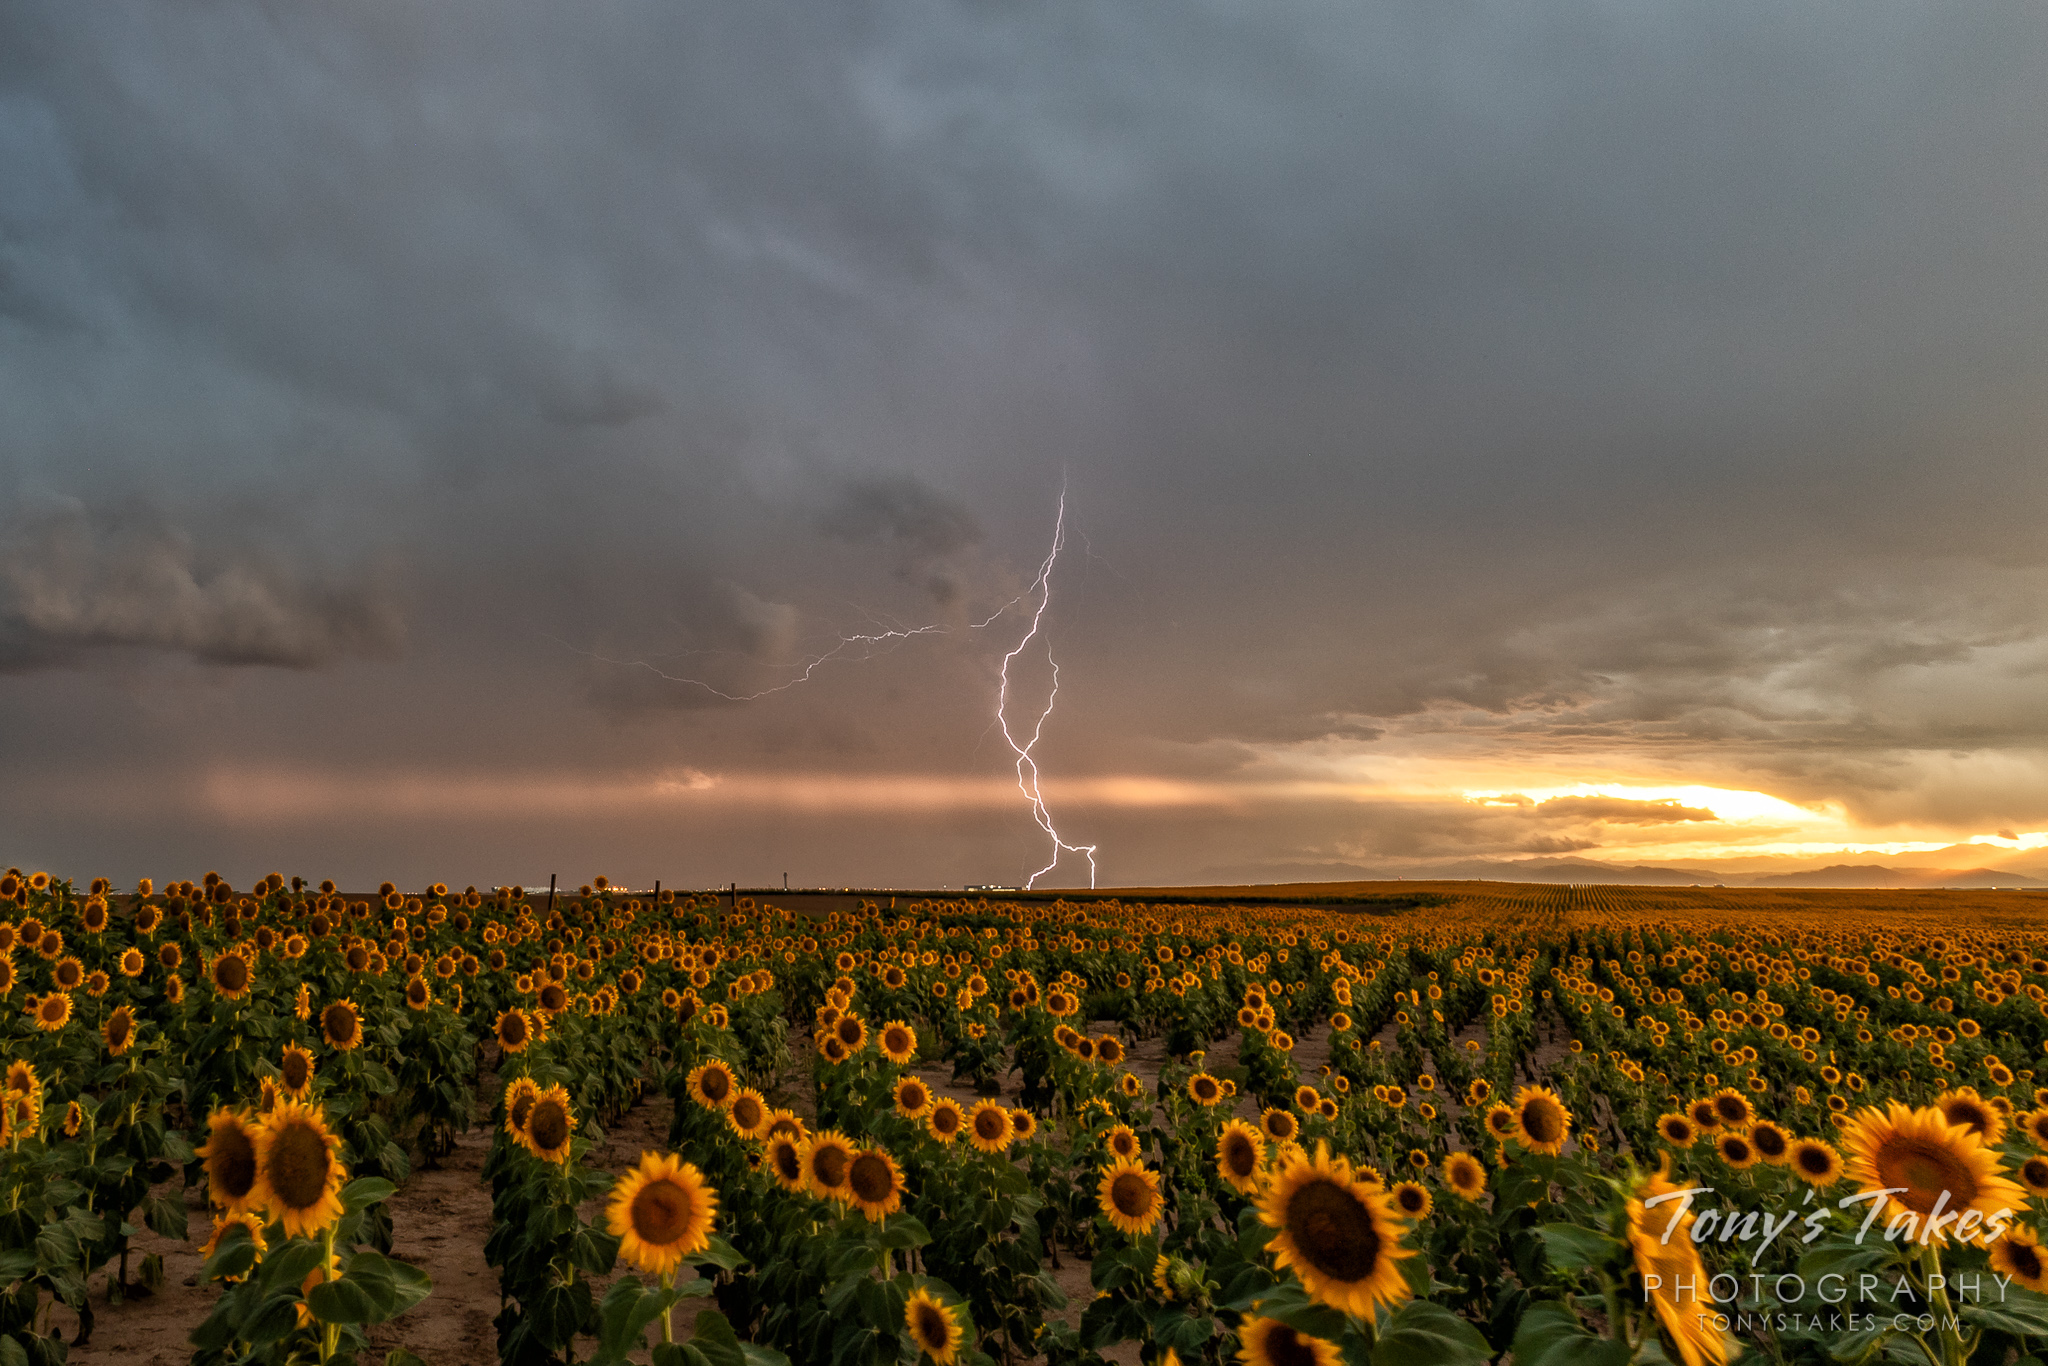 Lightning pops over a field of sunflowers east of Denver, Colorado. (© Tony's Takes)